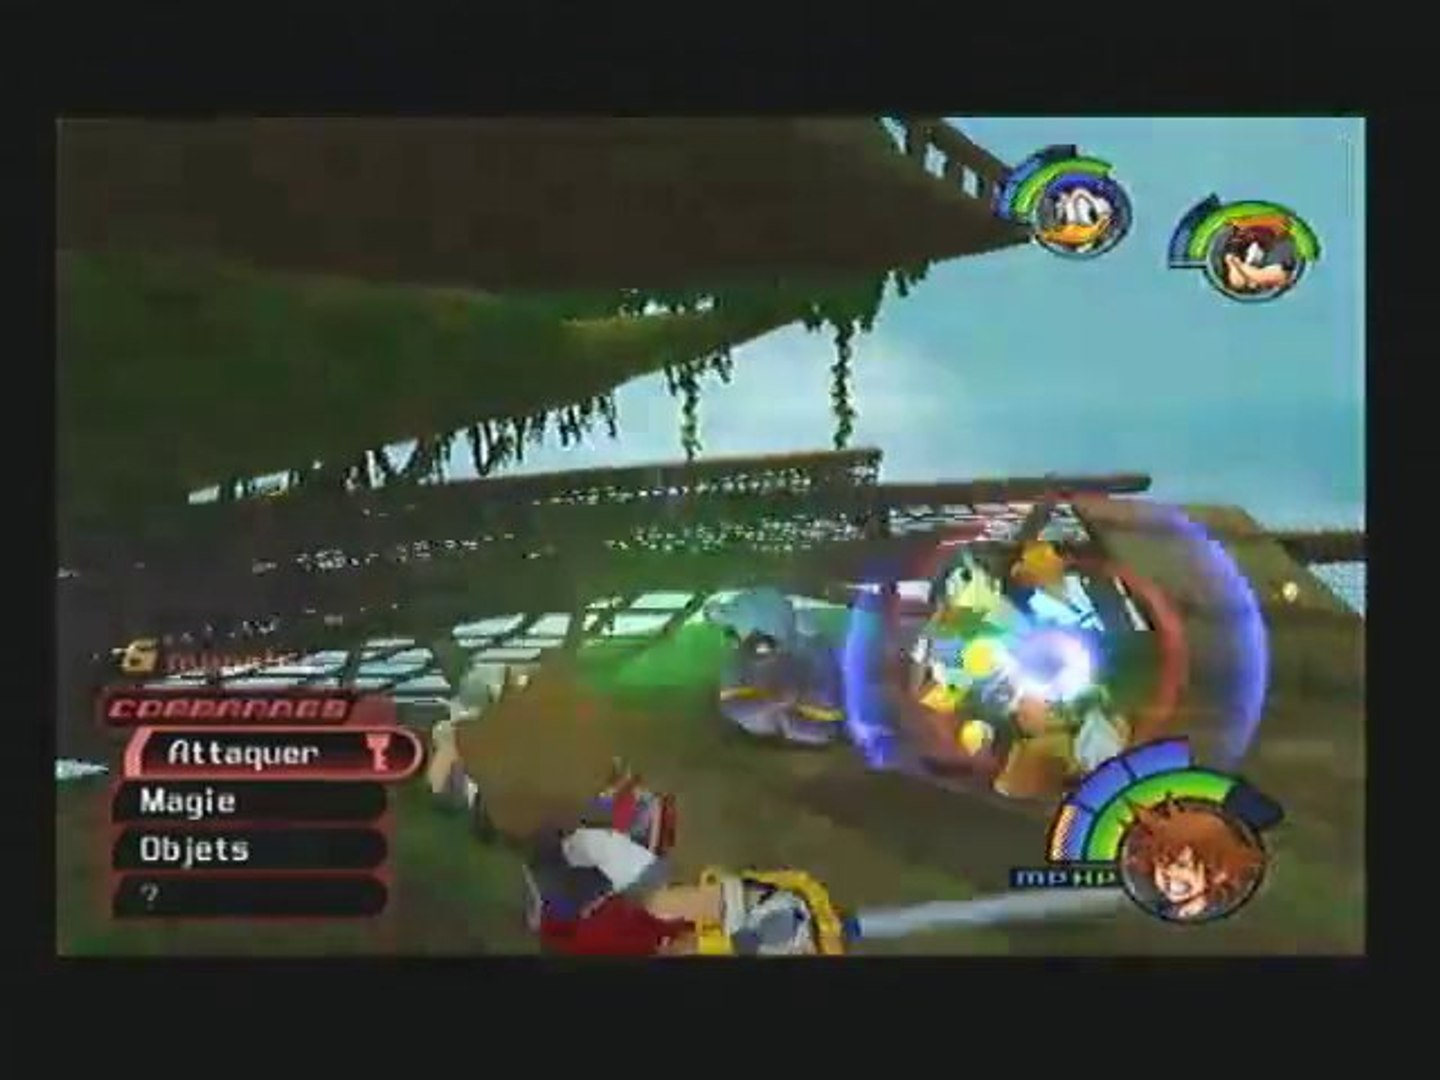 Kingdom hearts [10] Boss Boss  et re Boss